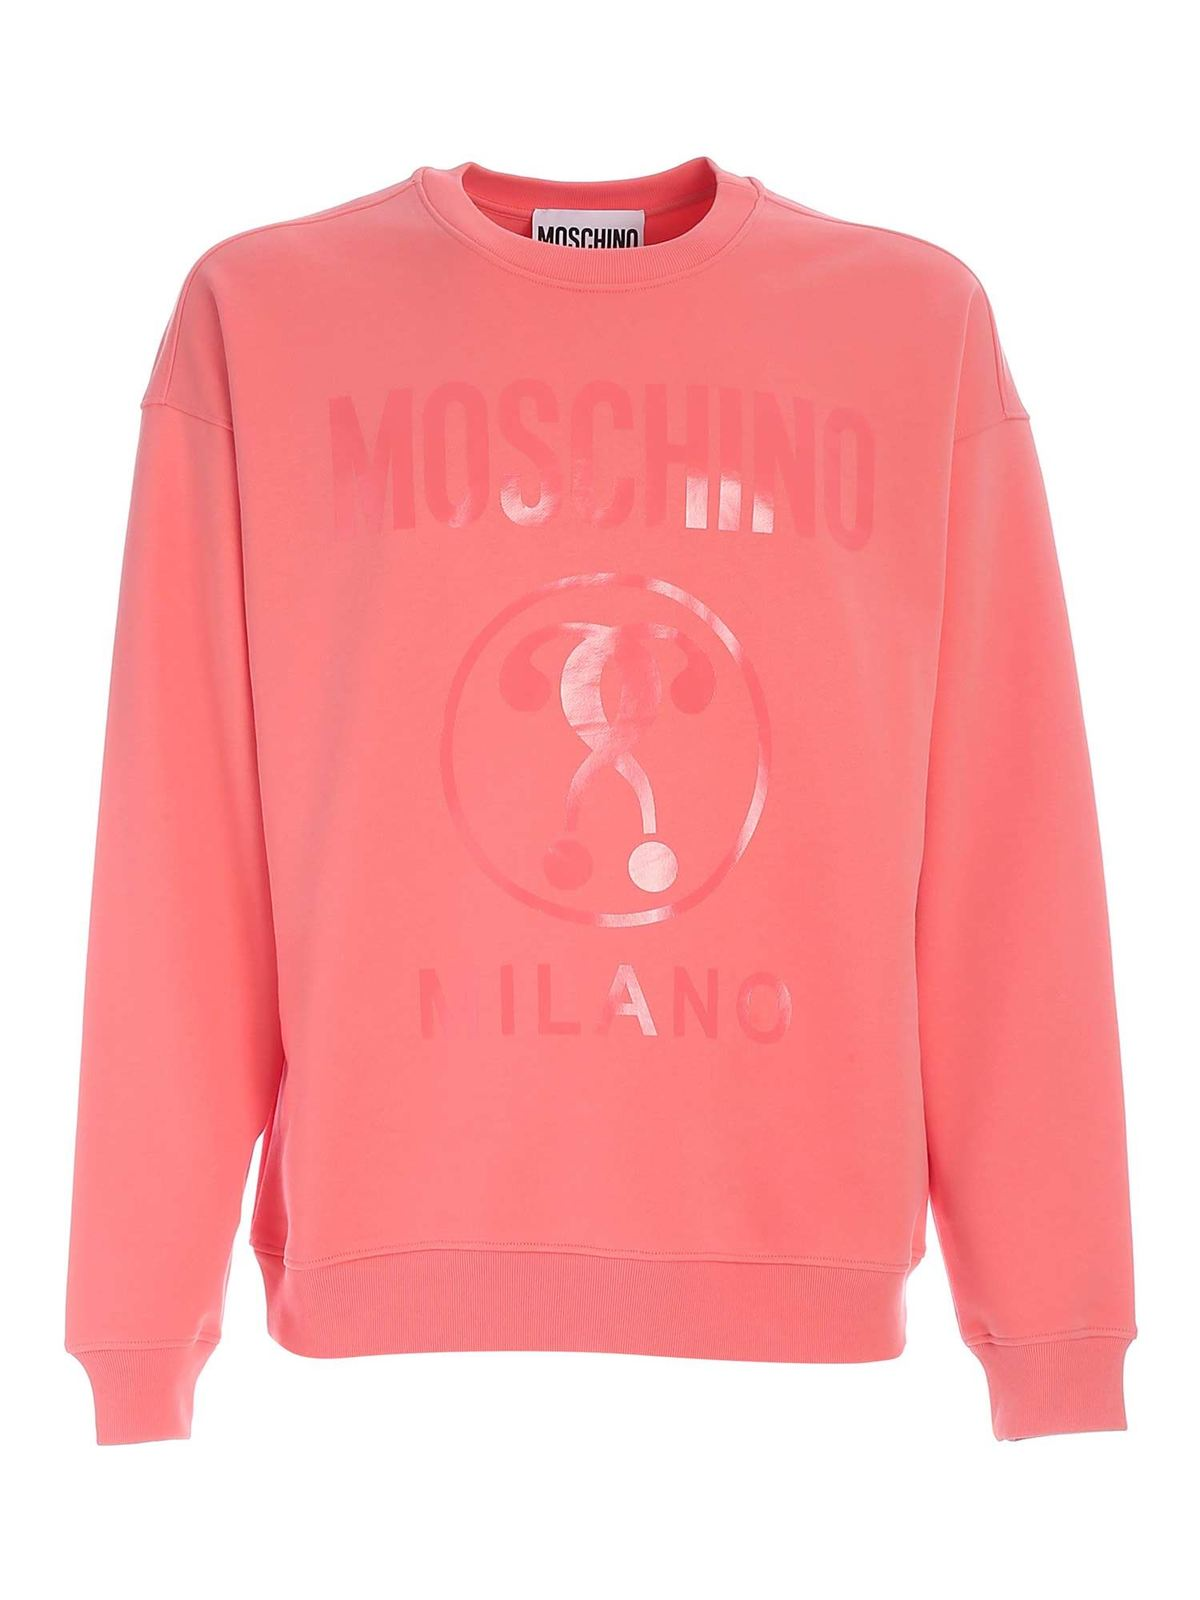 Moschino DOUBLE QUESTION MARK SWEATSHIRT IN PINK